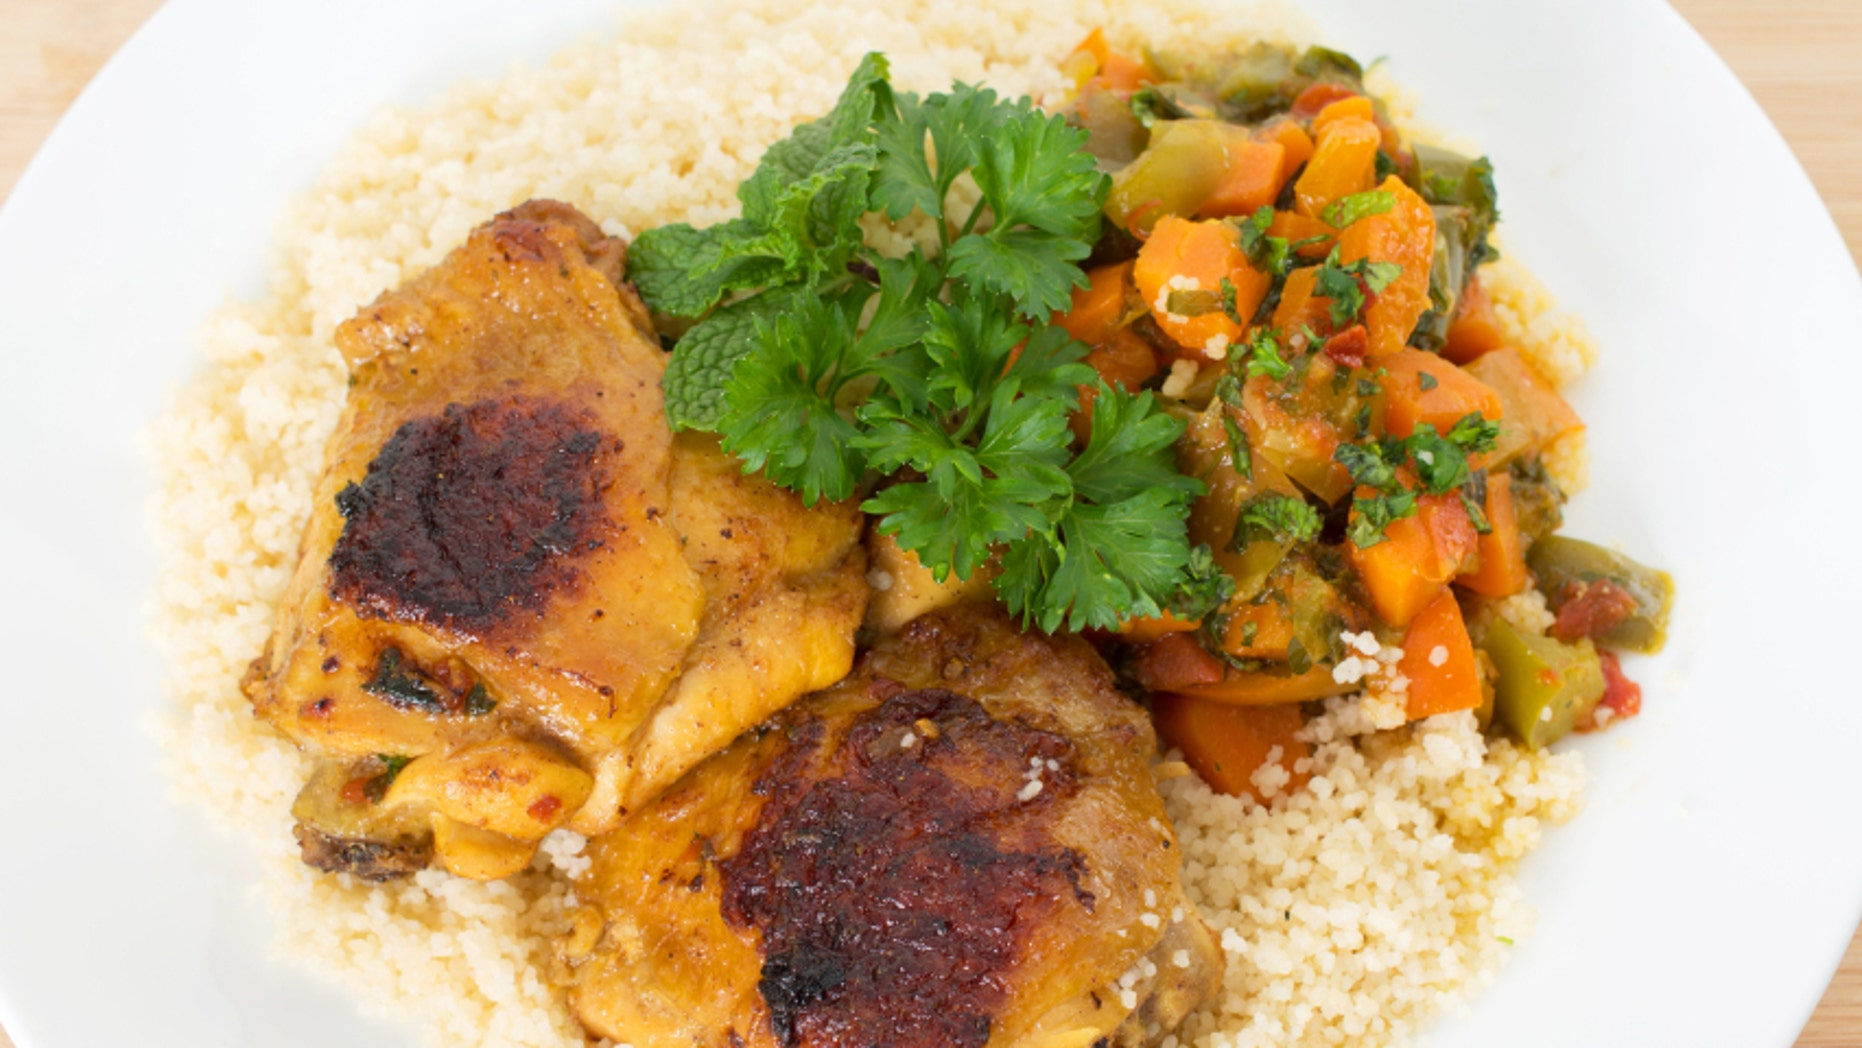 Cous cous Kabylia with chicken and vegetables